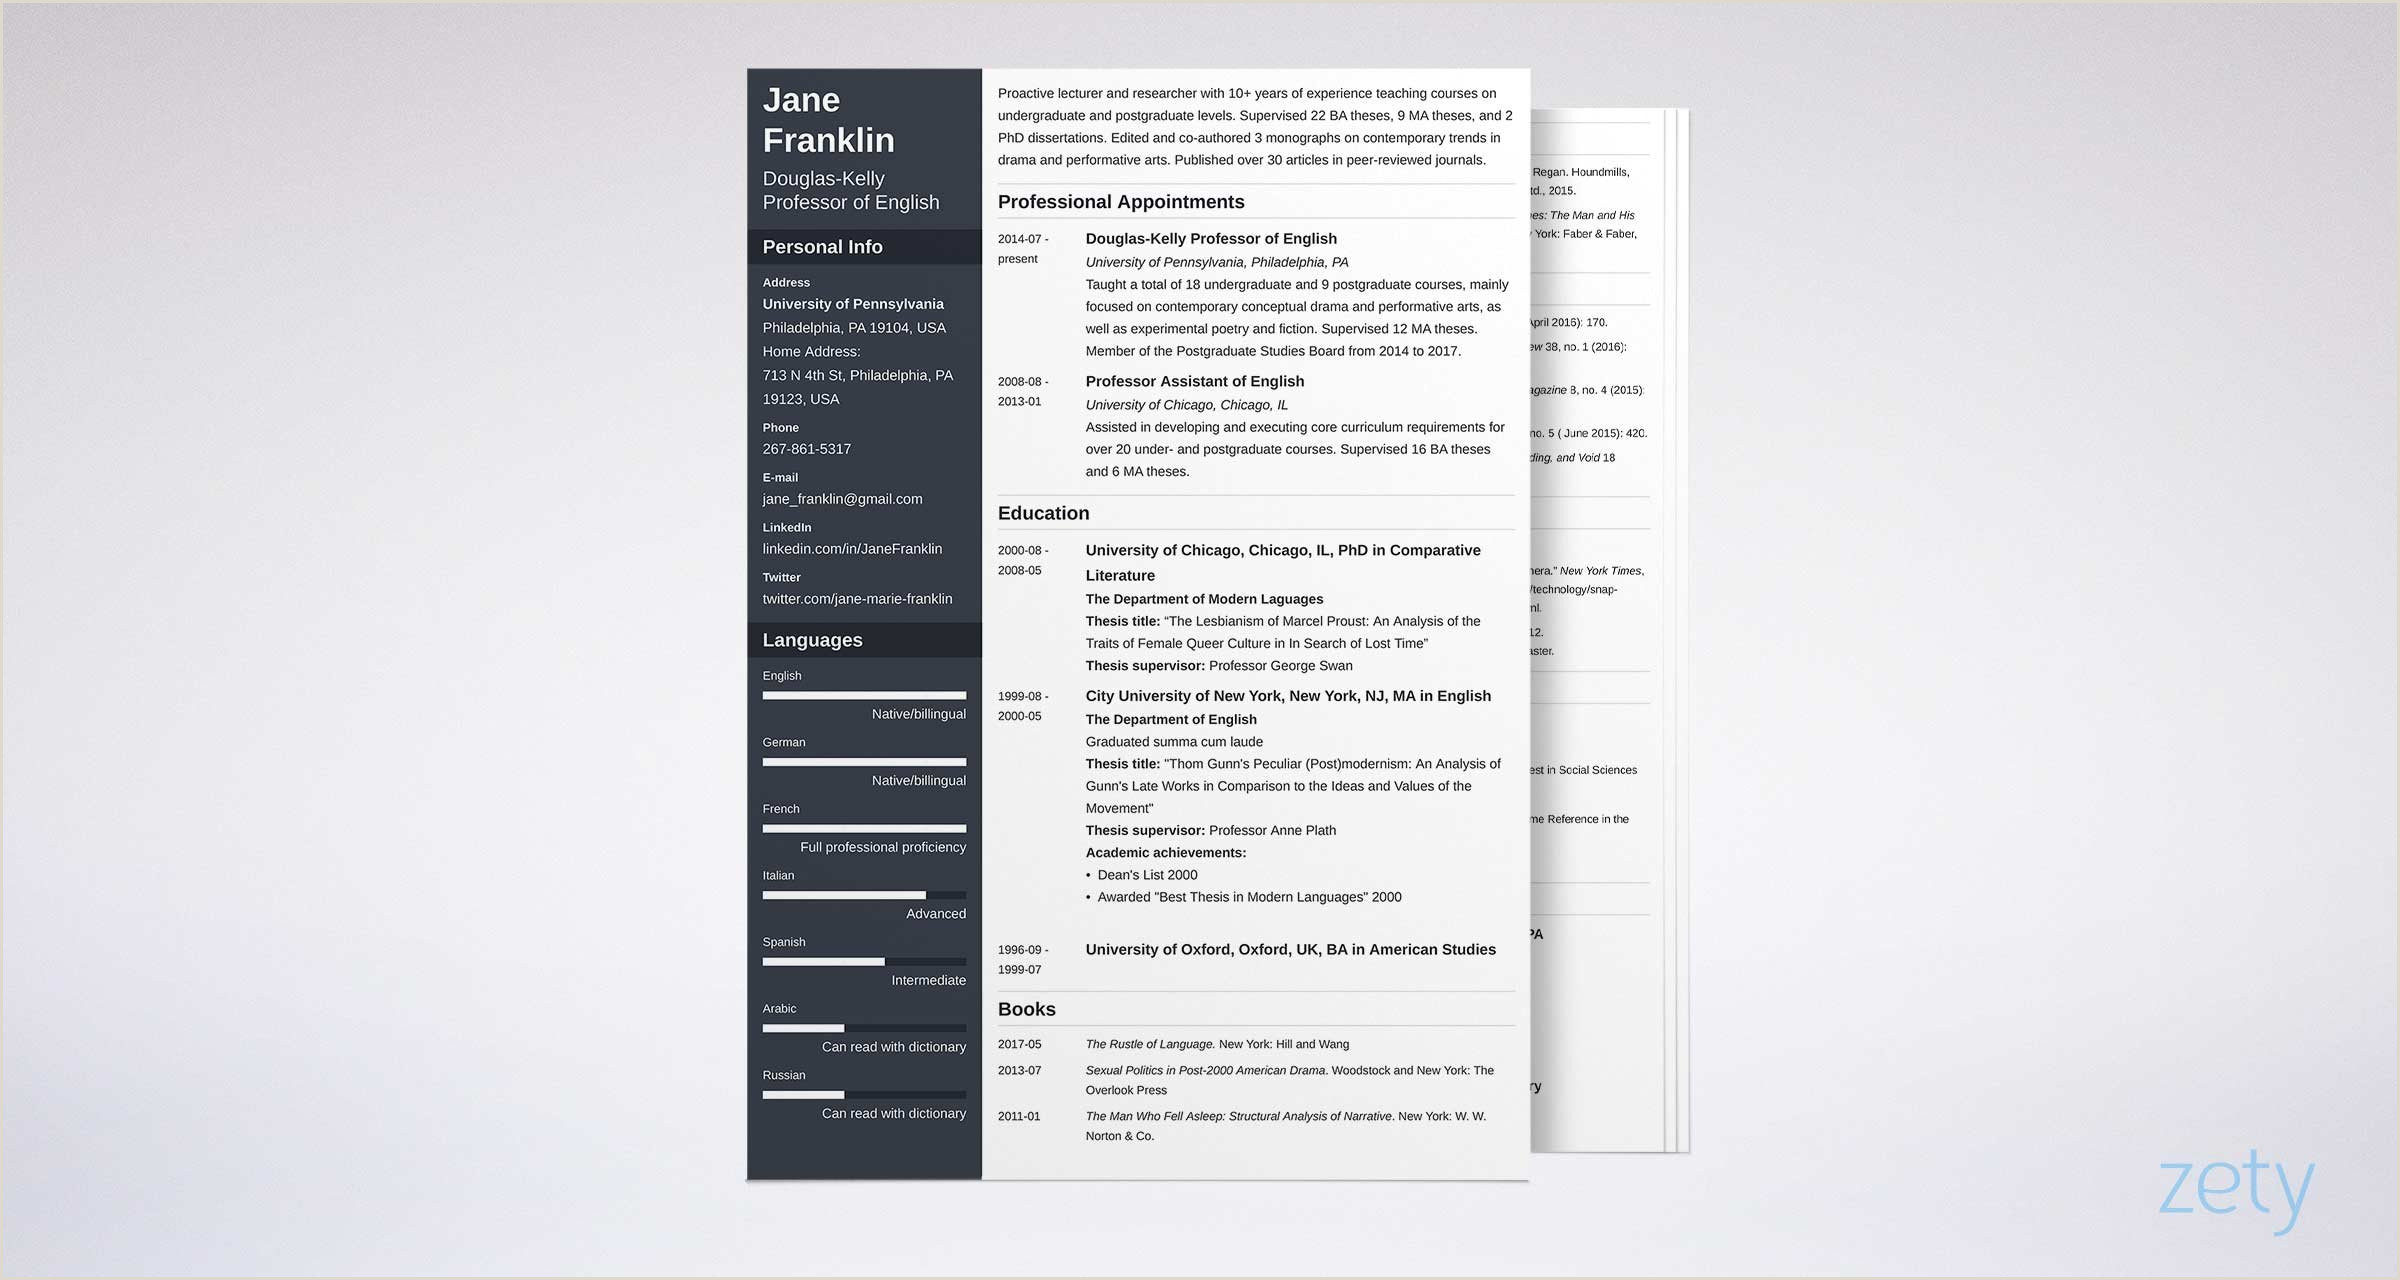 World Standard Cv format Academic Cv Example Template & Writing Guide [with 20